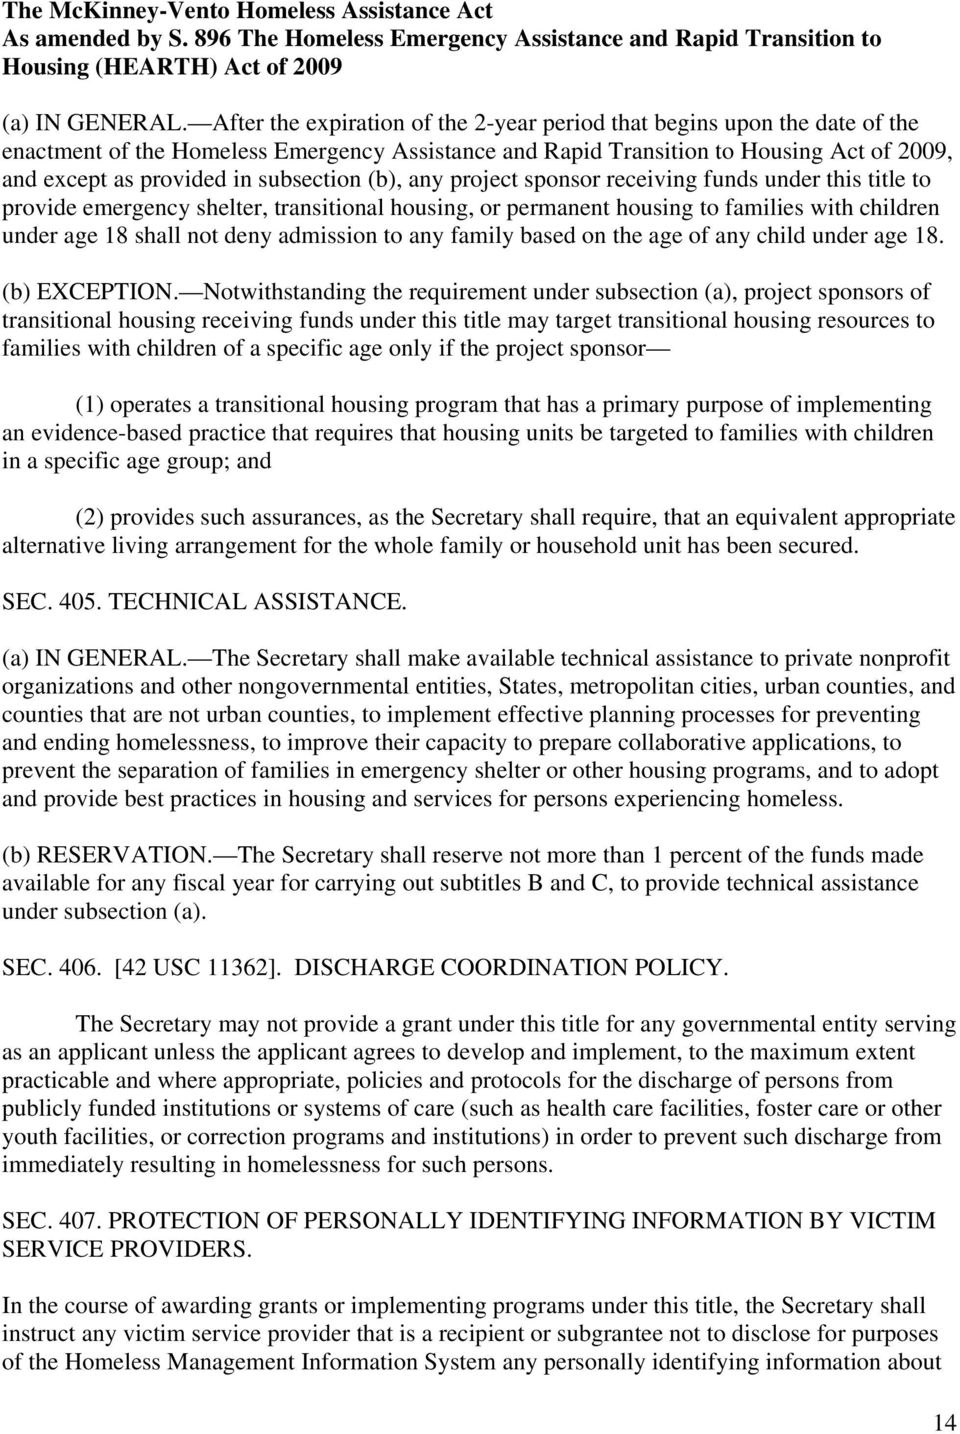 subsection (b), any project sponsor receiving funds under this title to provide emergency shelter, transitional housing, or permanent housing to families with children under age 18 shall not deny